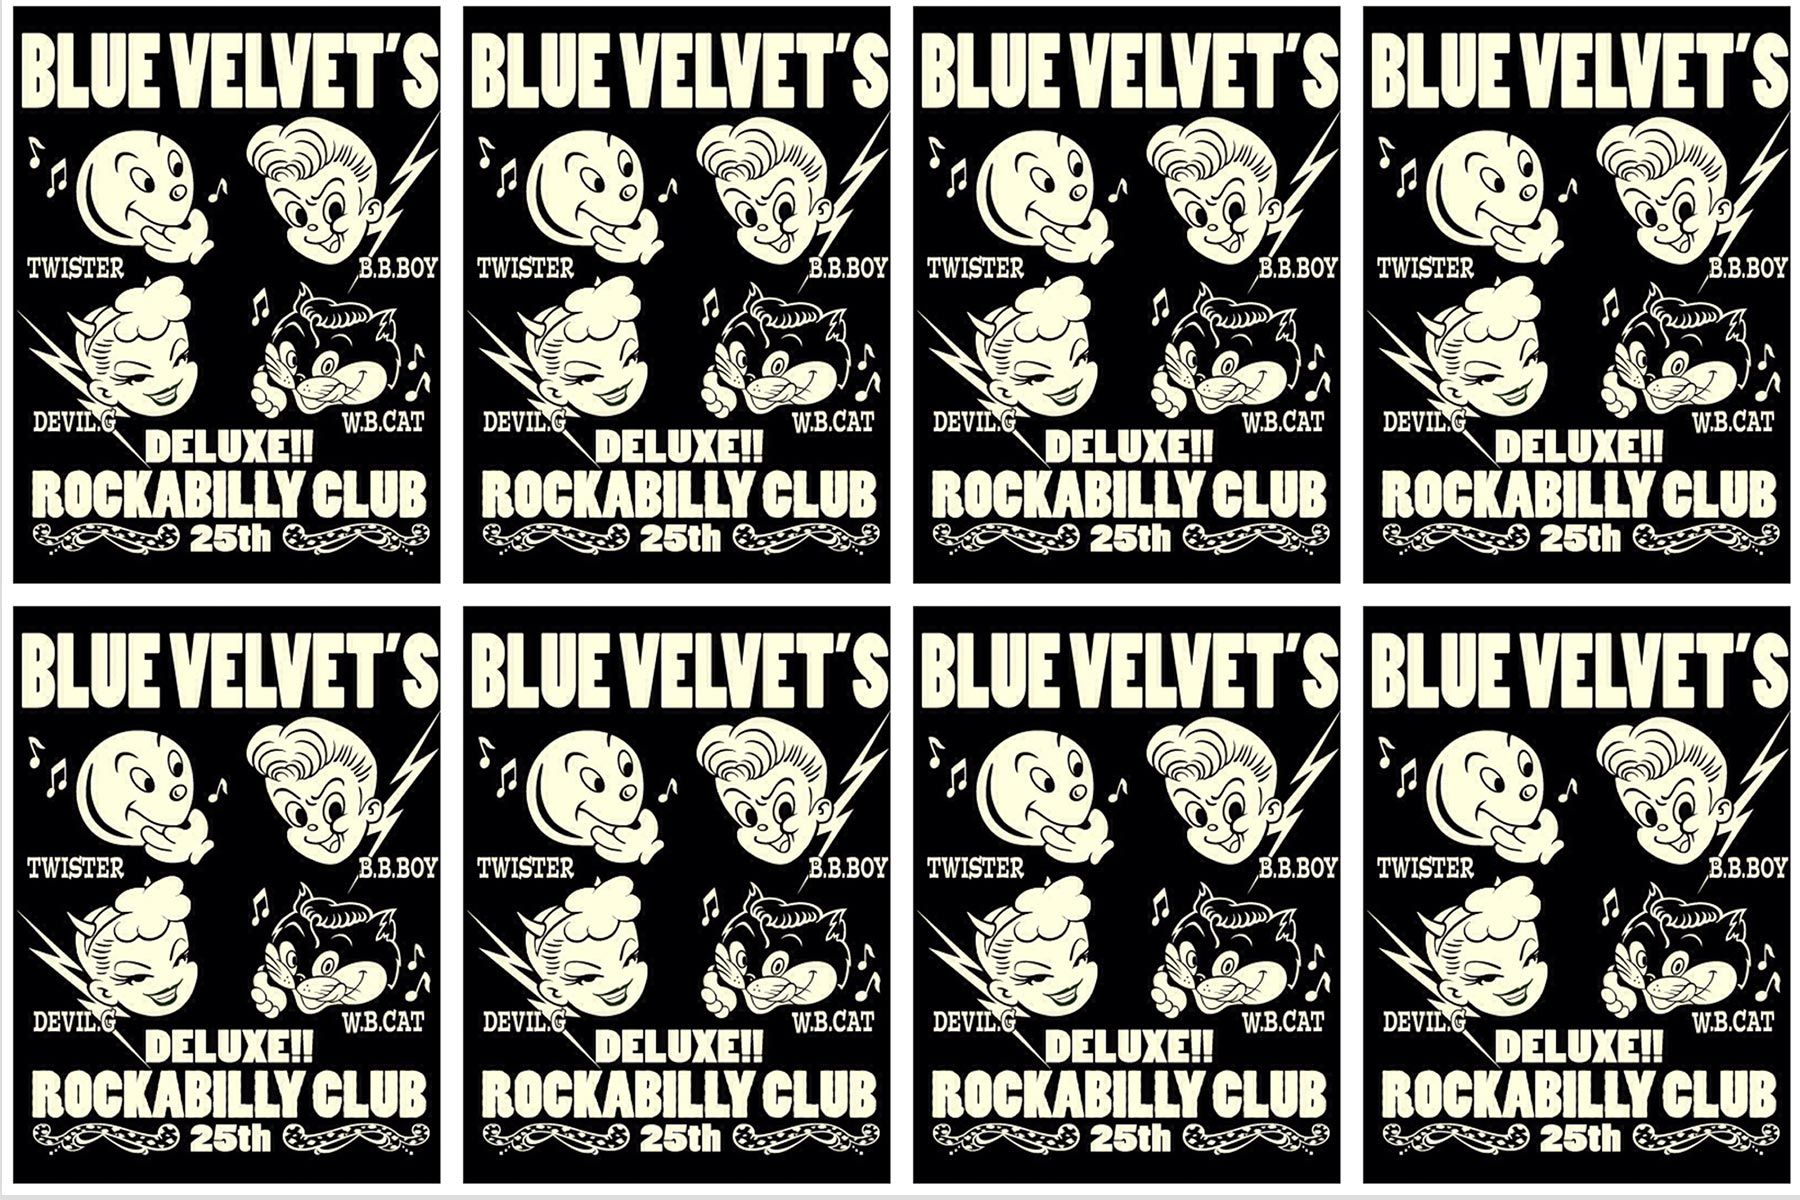 Drawings for Blue Velvet's 1950s rockabilly club Japan. Ponyboy magazine New York.